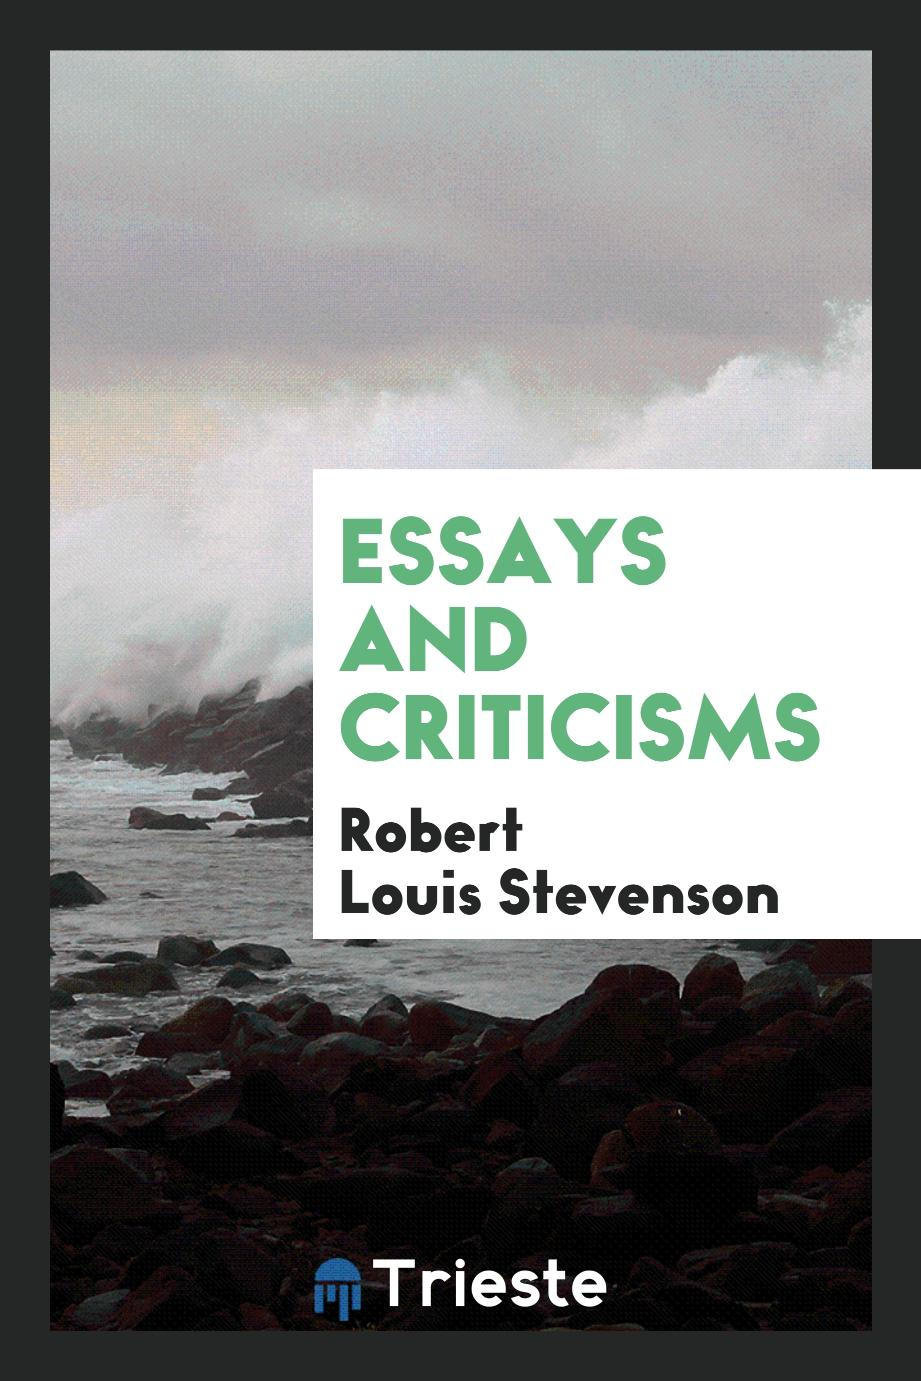 Essays and Criticisms